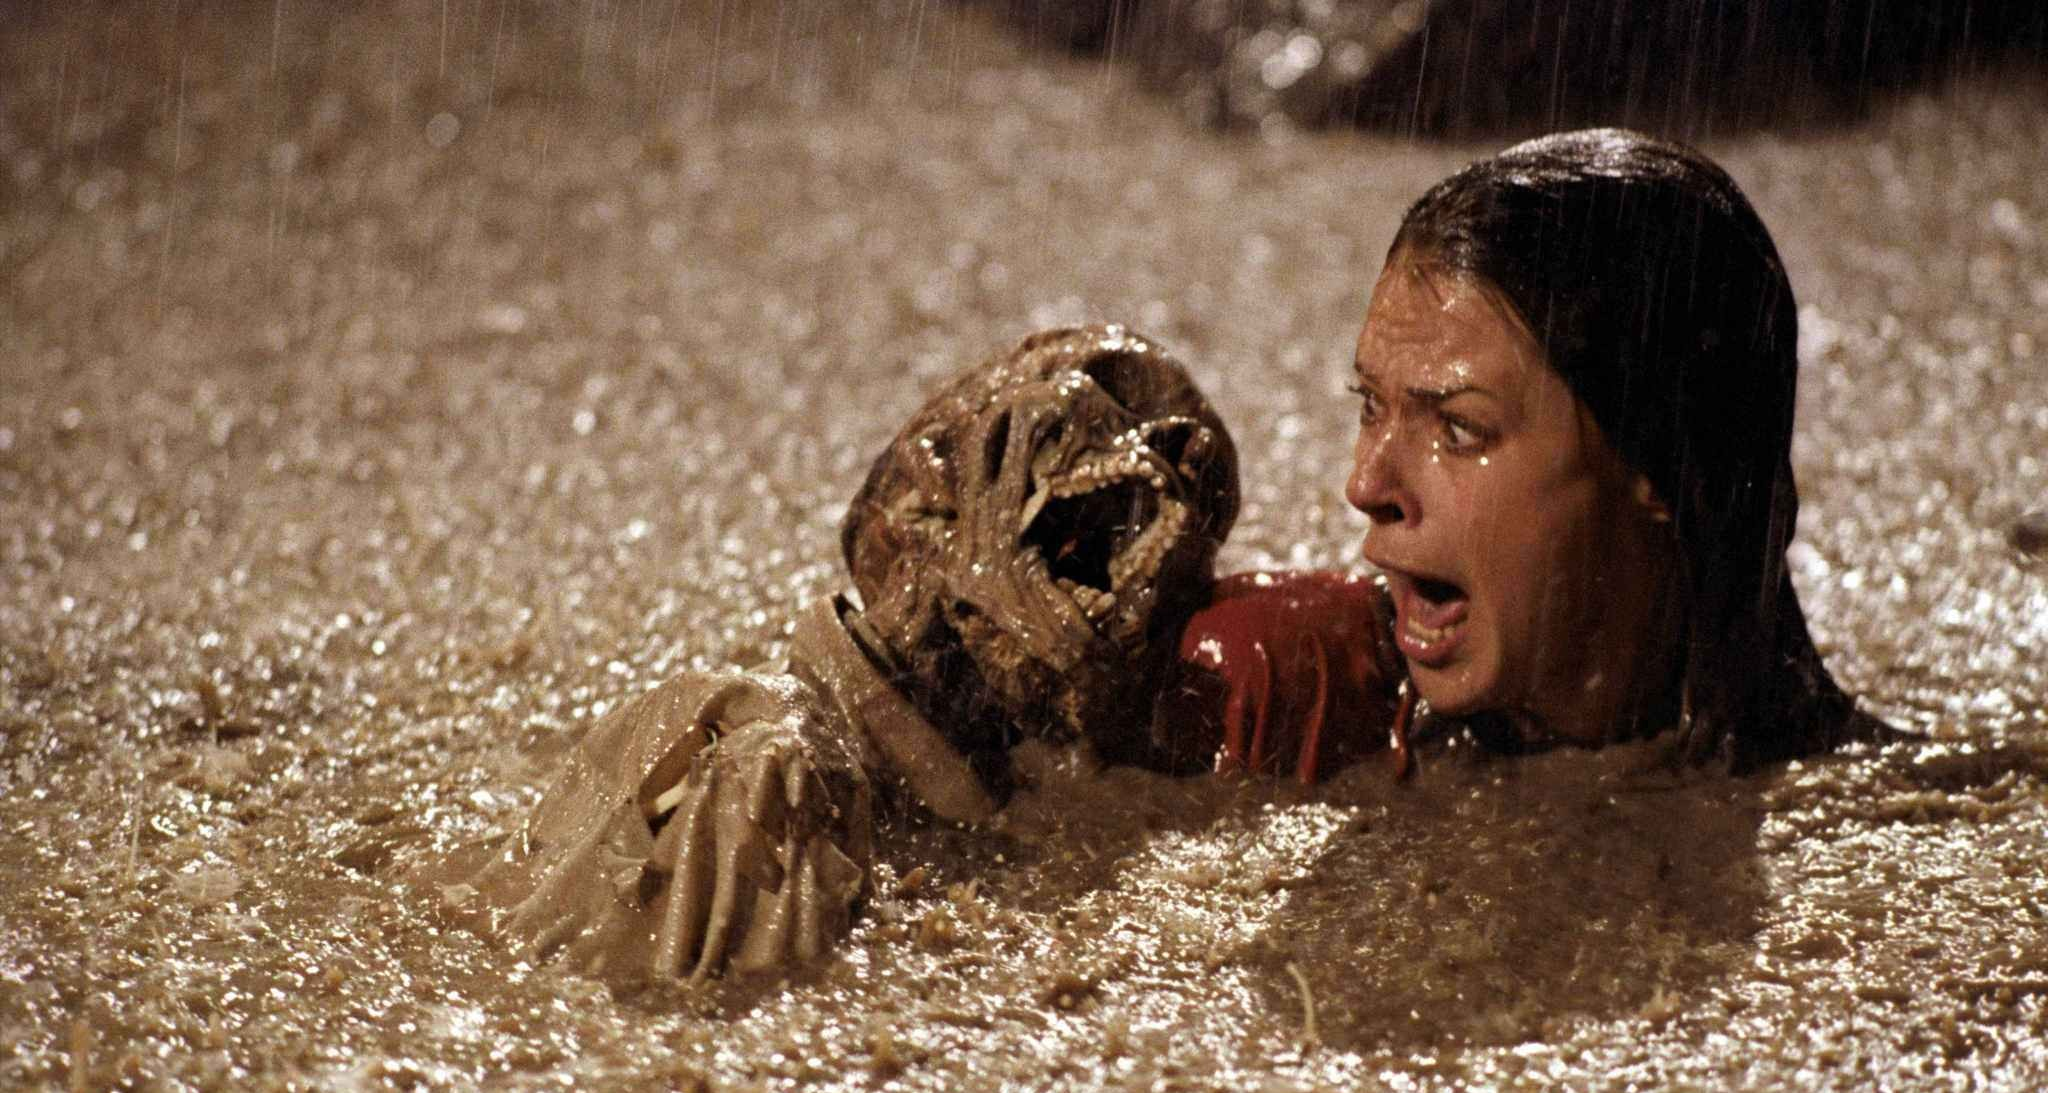 Diane Freeling (JoBeth Williams) in Poltergeist, di Tobe Hooper (1982). La sua reazione in questa scena è molto più reale di quanto non si pensi. Poltergeist JoBeth Williams Diane Freeling real skeletons hooper spielberg cult horror movie film pelicula cult stories cultstories.altervista.org poltergeist 2015 poltergeist 2 poltergeist 1982 poltergeist curse poltergeist movie poltergeist 3 poltergeist meaning poltergeist activity poltergeist trailer poltergeist full movie poltergeist poltergeist cast poltergeist actors poltergeist actress poltergeist activity trailer poltergeist amazon poltergeist a pixelated horror poltergeist amazon prime poltergeist age rating poltergeist at six flags poltergeist art a poltergeist attack a poltergeist ghost a poltergeist love a poltergeist haunting a poltergeist in my house a poltergeist vs ghost a poltergeist film poltergeist a pixelated horror walkthrough poltergeist a pixelated horror review poltergeist book poltergeist blu ray poltergeist braces poltergeist breyer poltergeist beast poltergeist band poltergeist box office poltergeist bathroom scene poltergeist bad guy poltergeist bed scene medo b poltergeist b a poltergeist poltergeist characters poltergeist cast death poltergeist clown scene poltergeist common sense media poltergeist cases poltergeist curse 2015 poltergeist closet poltergeist capybara poltergeist c'est quoi c quoi un poltergeist c'est quoi un poltergeist c pas bien poltergeist poltergeist deaths poltergeist define poltergeist diaries poltergeist director poltergeist def poltergeist doll poltergeist dvd poltergeist documentary poltergeist deaths on set poltergeist de enfield poltergeist d capitole d poltergeist capitole d poltergeist lyrics flava d poltergeist d&d 3.5 poltergeist poltergeist d'enfield wiki poltergeist de enfield wikipedia poltergeist d ace poltergeist d'arcachon poltergeist ending poltergeist enfield poltergeist etymology poltergeist en español poltergeist evidence poltergeist effect poltergeist exorcism poltergeist easter eggs poltergeist experiences poltergeist explained poltergeist e true hollywood story poltergeist e buzz poltergeist e.t e tisane poltergeist e enfield poltergeist e true hollywood poltergeist curse poltergeist e real poltergeist e bambini oque e poltergeist oq e poltergeist poltergeist film poltergeist fiesta texas poltergeist full movie free poltergeist full movie online poltergeist free online poltergeist face peel poltergeist full movie 1982 poltergeist facts poltergeist full movie 2015 poltergeist f poltergeist girl poltergeist ghost poltergeist gif poltergeist gem poltergeist google drive poltergeist geometry dash poltergeist game poltergeist guy poltergeist go into the light poltergeist get out gnula poltergeist poltergeist house poltergeist harry potter poltergeist haunting poltergeist house location poltergeist house address poltergeist horror movie poltergeist haunted set poltergeist heather o'rourke poltergeist hulu poltergeist head spin poltergeist imdb poltergeist ii poltergeist iii poltergeist in spanish poltergeist images poltergeist in harry potter poltergeist in real life poltergeist iii cast poltergeist ii cast poltergeist in enfield i poltergeist esistono i poltergeist wikipedia poltergeist i have exorcised the demons poltergeist i'm back poltergeist i 1982 poltergeist i hate pizza hut poltergeist i am db poltergeist i a coward too i'm baaaack poltergeist poltergeist js poltergeist jump cut poltergeist jokes poltergeist james kahn poltergeist jumpscare poltergeist js true poltergeist jinx poltergeist janet poltergeist juegos diabólicos poltergeist jerry goldsmith poltergeist kane poltergeist kitchen poltergeist knives poltergeist kitchen scene poltergeist kennedi clements poltergeist kendra poltergeist kane let me in poltergeist katy perry poltergeist kid name poltergeist kid actors sasha k poltergeist k es un poltergeist poltergeist k streaming poltergeist little girl poltergeist lady poltergeist legacy poltergeist little lady poltergeist lyrics poltergeist location poltergeist lady this house is clean poltergeist let me in poltergeist legend poltergeist lines poltergeist l'histoire poltergeist l'altra dimensione l'actrice de poltergeist poltergeist l'altra dimensione streaming l'affaire poltergeist l'histoire de poltergeist poltergeist l poltergeist l'intégrale saison 1 poltergeist meme poltergeist movie curse poltergeist movie 1982 poltergeist movie cast poltergeist movie deaths poltergeist movie online poltergeist movie poster poltergeist music poltergeist m poltergeist m-w poltergeist new poltergeist netflix poltergeist novel poltergeist names poltergeist new movie trailer poltergeist no more poltergeist nk poltergeist national anthem poltergeist new vs old poltergeist new cast poltergeist old man poltergeist original poltergeist old lady poltergeist online poltergeist on netflix poltergeist of borley forest poltergeist original movie poltergeist old movie poltergeist online for free poltergeist old woman o poltergeist de enfield o poltergeist 2015 o poltergeist filme o poltergeist de enfield wikipedia o poltergeist filme completo poltergeist o fenômeno poltergeist o que é poltergeist o fenômeno 2015 poltergeist o fenômeno filme completo poltergeist o fenômeno filme completo dublado poltergeist preacher poltergeist parents guide poltergeist plot poltergeist poster poltergeist pictures poltergeist priest poltergeist pool poltergeist preview poltergeist psychic poltergeist putlockers poltergeist p poltergeist quotes poltergeist quiz poltergeist quotes stay away from the light poltergeist quote this house is clean poltergeist quotes 2015 poltergeist quora poltergeist quotev poltergeist qartulad poltergeist quotes tangina poltergeist qvod poltergeist q es poltergeist q significa q es un poltergeist q dia estreia poltergeist q es el poltergeist poltergeist remake poltergeist review poltergeist real poltergeist release date poltergeist ride poltergeist real life poltergeist report poltergeist ruby poltergeist release date 1982 poltergeist rating 1982 poltergeist r rating poltergeist r poltergeist six flags poltergeist stories poltergeist song poltergeist summary poltergeist soundtrack poltergeist skeletons poltergeist series poltergeist synopsis poltergeist streaming poltergeist supernatural what is a poltergeist poltergeist s prevodom poltergeist s.r.l poltergeist the movie poltergeist tv poltergeist tree poltergeist theme poltergeist they're back poltergeist this house is clean poltergeist true story poltergeist tangina poltergeist tv scene poltergeist t shirt poltergeist t e t poltergeist poltergeist urban dictionary poltergeist unblocked poltergeist unrated poltergeist uv code poltergeist url blacklist poltergeist used real skeletons poltergeist underwear poltergeist urban legend poltergeist unexplained deaths poltergeist used in a sentence poltergeist youtube poltergeist u bioskopima poltergeist videos poltergeist villain poltergeist vhs poltergeist video game poltergeist voice poltergeist vs ghost harry potter poltergeist vs haunting poltergeist vs selenium poltergeist viooz poltergeist video clips poltergeist vs ghost poltergeist v poltergeist v čechách poltergeist v sloveniji poltergeist v asenovgrad poltergeist v dome poltergeist v burgas heroes v poltergeist poltergeist v čr poltergeist v kinach poltergeist wiki poltergeist what's happening poltergeist works poltergeist watch online poltergeist woman poltergeist worm poltergeist writer poltergeist wallpaper poltergeist watch free poltergeist witchery poltergeist w poltergeist w domu poltergeist w kinach poltergeist w polsce poltergeist w mieszkaniu poltergeist w cda poltergeist xmovies8 poltergeist clown poltergeist x reader poltergeist x files x factor poltergeist x movies 8 poltergeist poltergeist yify poltergeist you didn't move the bodies poltergeist you're all gonna die poltergeist youtube full movie poltergeist you only moved the headstones poltergeist youtube channel poltergeist young actress dies poltergeist you left the bodies poltergeist yts poltergeist y su maldicion poltergeist y otras peliculas malditas poltergeist y adolescentes insidious y poltergeist poltergeist y otras películas malditas casas encantadas y poltergeist poltergeist y sus actores poltergeist y sus dos secuelas poltergeist y secuelas espiritu golpeador y poltergeist poltergeist zelda poltergeist zatox poltergeist zatox lyrics poltergeist zelda rubinstein quotes poltergeist zombie poltergeist z enfield poltergeist zalukaj poltergeist zatox feat nikkita poltergeist znacenje poltergeist zatox mp3 poltergeist z jihlavy poltergeist z enfieldu poltergeist z kalkaty poltergeist z rosenheim poltergeist z harrego pottera akta z poltergeist poltergeist 0 to 60 poltergeist 0.6 asok – poltergeist 018 poltergeist trackid=sp-006 cineblog01 poltergeist poltergeist 21/05 0 que significa poltergeist poltergeist 1982 cast poltergeist 1982 full movie poltergeist 1982 clown poltergeist 1982 review poltergeist 1982 rating poltergeist 1982 streaming poltergeist 1982 poster poltergeist 1982 full movie free poltergeist 1988 poltergeist 1 trailer poltergeist 1 full movie poltergeist 1 2 3 poltergeist 1 cast poltergeist 1 channel poltergeist 1 film online subtitrat poltergeist 1 imdb poltergeist 1 online poltergeist 1 pelicula completa en español latino poltergeist 1 pelicula completa poltergeist 2015 full movie poltergeist 2 cast poltergeist 2015 review poltergeist 2016 poltergeist 2 preacher poltergeist 2 remake poltergeist 2 full movie poltergeist 2 trailer poltergeist 2 old man 2. poltergeist 1982 poltergeist 2 kane poltergeist 2 full movie youtube poltergeist 2 rotten tomatoes poltergeist 2 blu ray poltergeist 3 cast poltergeist 3 imdb poltergeist 3 trailer poltergeist 3d poltergust 3000 poltergeist 3 ending poltergeist 3 review poltergeist 3 carol anne poltergeist 3 cast deaths poltergeist 3 kane poltergeist 3 full movie poltergeist 3 original ending poltergeist 3 deaths poltergeist 3 blu ray poltergeist 4 cast poltergeist 4 full movie poltergust 4000 poltergust 400 poltergeist 4 trailer poltergeist 4 in the shadows poltergeist 480p poltergeist 4dx poltergeist 42nd street poltergeist 4 deaths 4 poltergeist deaths poltergeist 4 poltergeist 4 imdb poltergeist 4 release date channel 4 poltergeist documentary smt4 poltergeist watch poltergeist 4 poltergust 5000 poltergeist 5e poltergust 5000 replica poltergust 5000 toy poltergust 5000 backpack poltergust 5000 amazon poltergust 5000 boo poltergust 5000 plush poltergust 5000 how to make poltergust 5000 real life poltergeist 5 poltergeist 5 movie poltergeist 5 trailer poltergeist 5 levels poltergeist 5 drive in poltergeist 5 stages top 5 poltergeist 5 facts about poltergeist heroes 5 poltergeist gta 5 poltergeist poltergeist 6 flags poltergeist 6 disc prototype poltergeist 67 poltergeist commodore 64 poltergeist route 66 poltergeist final fantasy 6 poltergeist 6 final fantasy 6 poltergeist schecter solo 6 poltergeist poltergeist 720p poltergeist 720p yify poltergeist 720p yify subtitles poltergeist 720p subtitles poltergeist 720p kickass poltergeist 70s poltergeist 720p 2015 poltergeist 70mm poltergeist 720p latino poltergeist 720p mega poltergeist 7 7 signs of poltergeist phantom mansion 7 poltergeist heist poltergeist 82 poltergeist 80s cast poltergeist 82 trailer poltergeist 856 ad poltergeist 87 poltergeist 8 year old poltergeist 82 online rmg poltergeist 80 incubus poltergeist 8 poltergeist movies 8 cinema 8 poltergeist century 8 poltergeist 8 most famous poltergeist cases incubus poltergeist 8 lug incubus poltergeist 8 wheels lab x8 poltergeist poltergeist 9 criteria poltergeist 9gag poltergeist 94 mtn 94 poltergeist montana 94 poltergeist poltergeist cinema 95 poltergeist cinema 9 9 signs poltergeist 9 rules of poltergeist cult stories cultstories cinema cult story cultstory art culture music ipse dixit aneddoti citazioni frasi famose aforismi immagini foto personaggi cultura musica storie facts fatti celebrità vip cult spettacoli live performance concerto photo photography celebrity giornalismo scrittura libri genio pop icon attore cantante solista pittrice scultore attrice star diva sex symbol mito